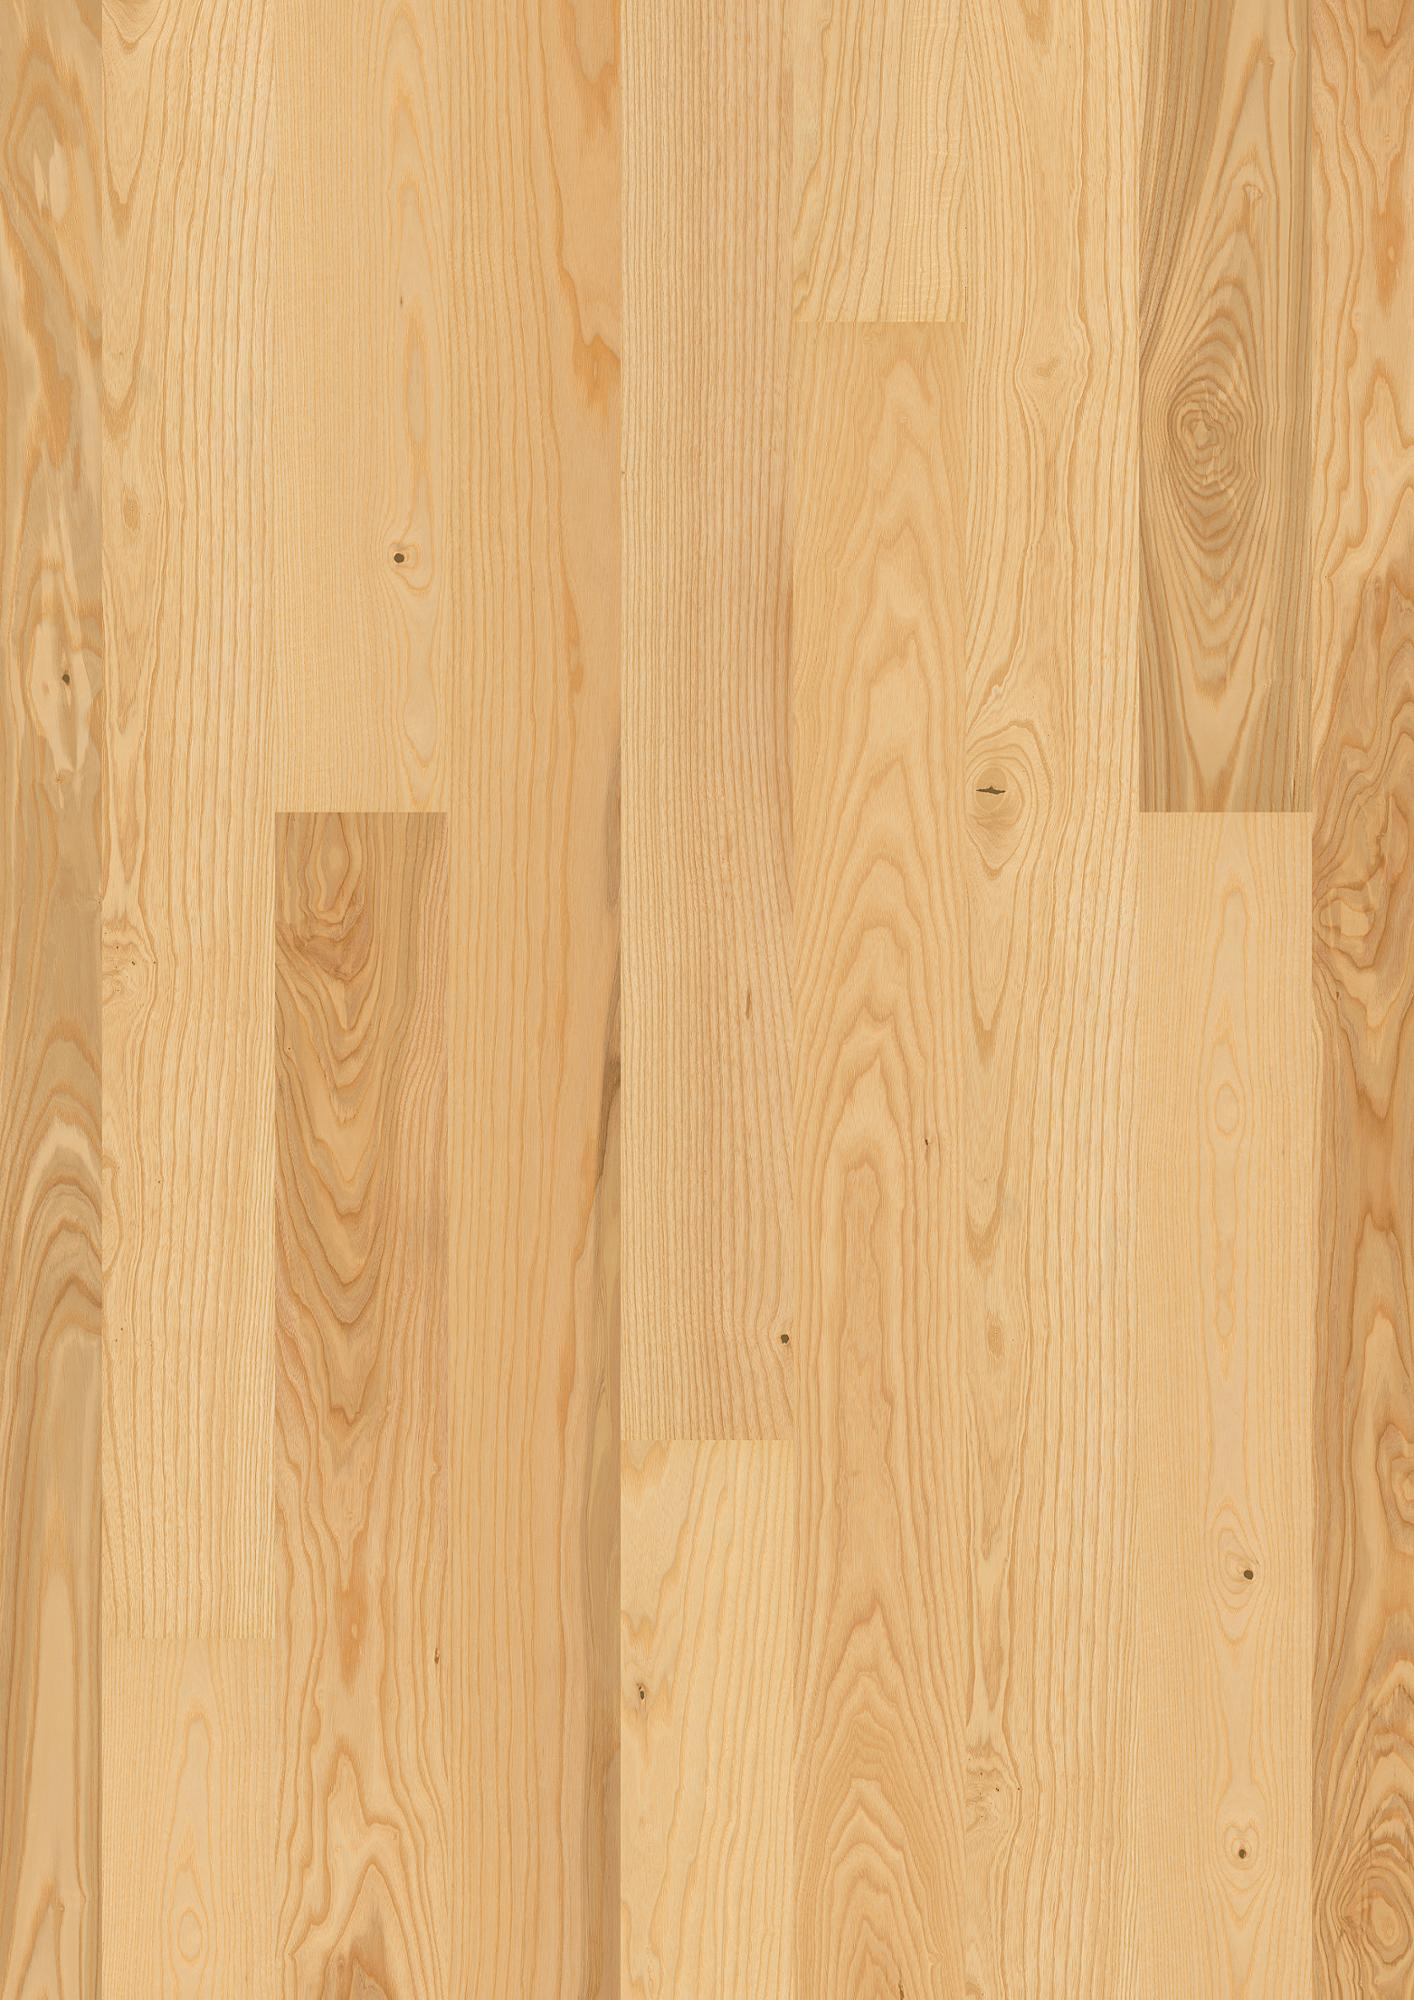 Ash Animoso, Live Satin lacquer, Plank 138, 14x138x2200mm